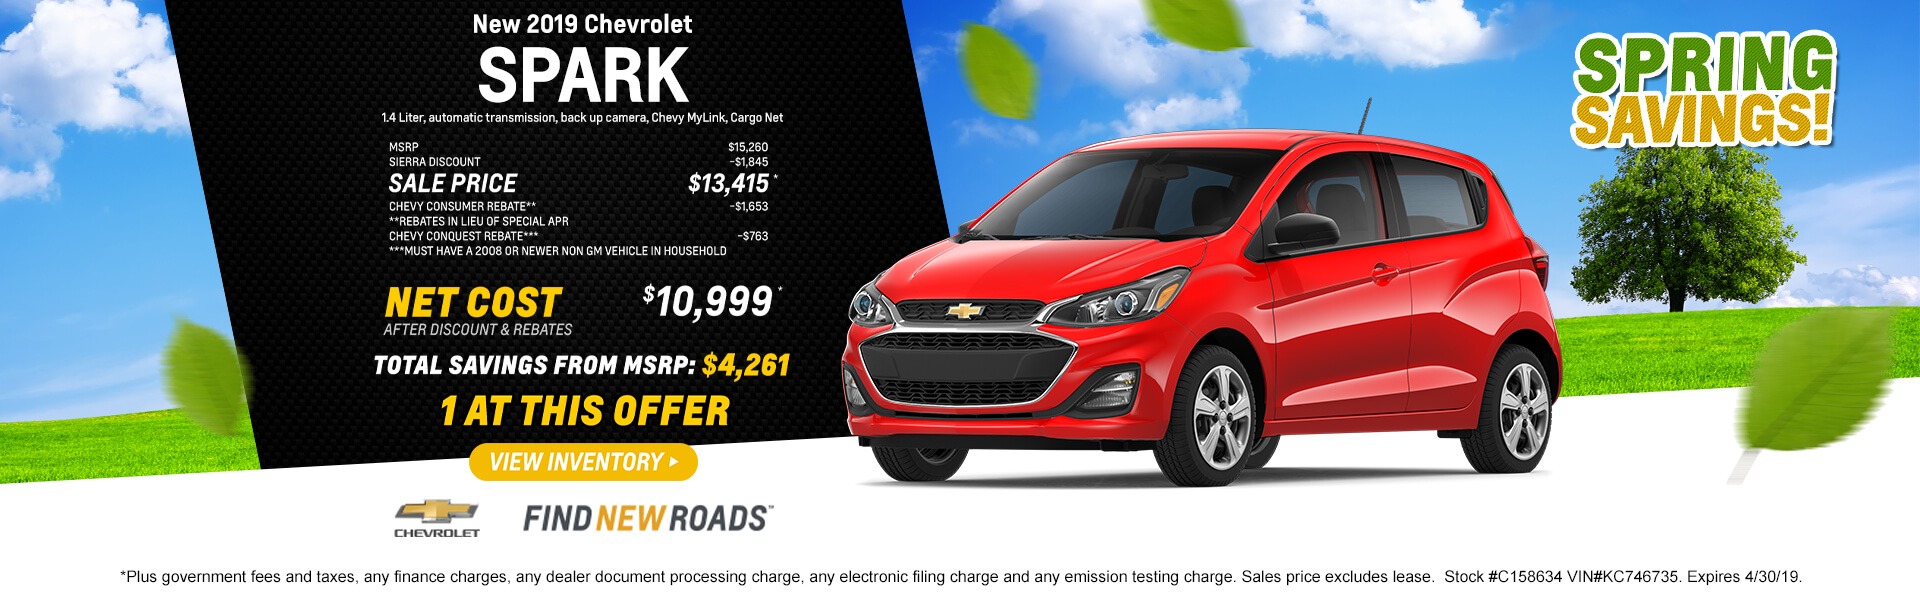 2019 Spark Hatchback $10,999 *Plus government fees and taxes, any finance charges, any dealer document processing charge, any electronic filing charge and any emission testing charge. Sales price excludes lease.  Stock #C158634 VIN#KC746735. Expires 4/30/19.